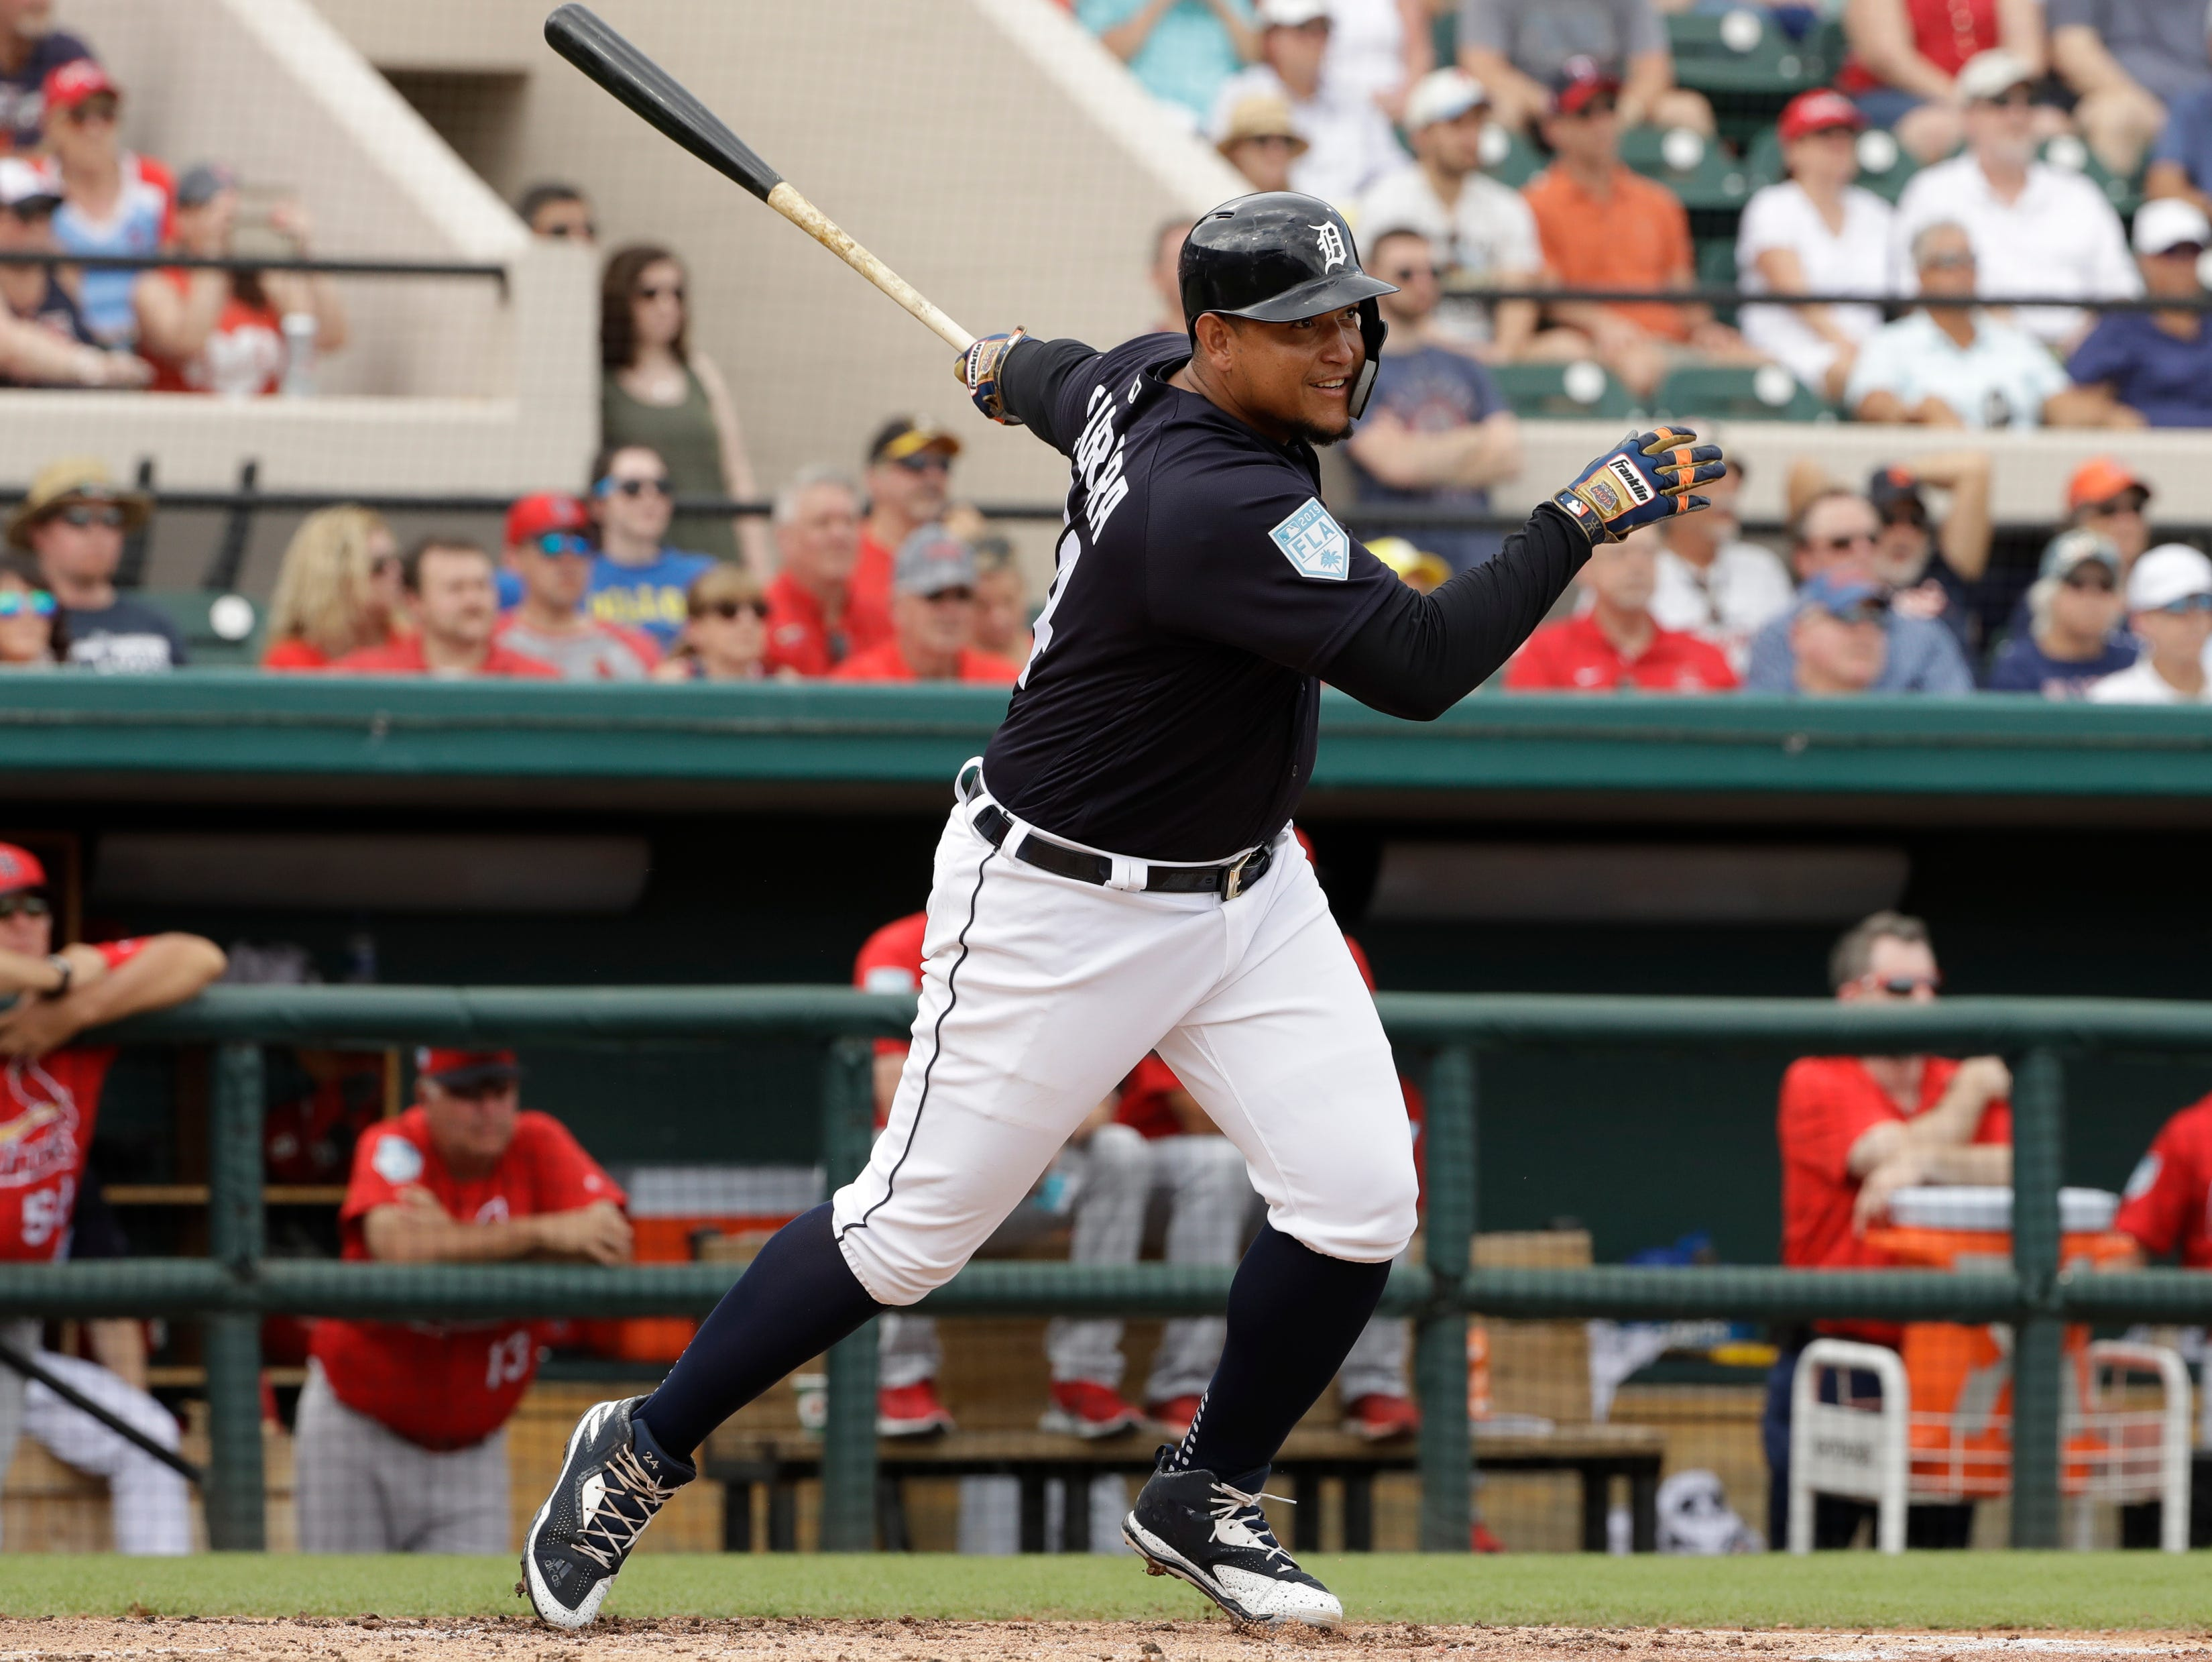 Detroit Tigers' Miguel Cabrera bats against the St. Louis Cardinals during the third inning.